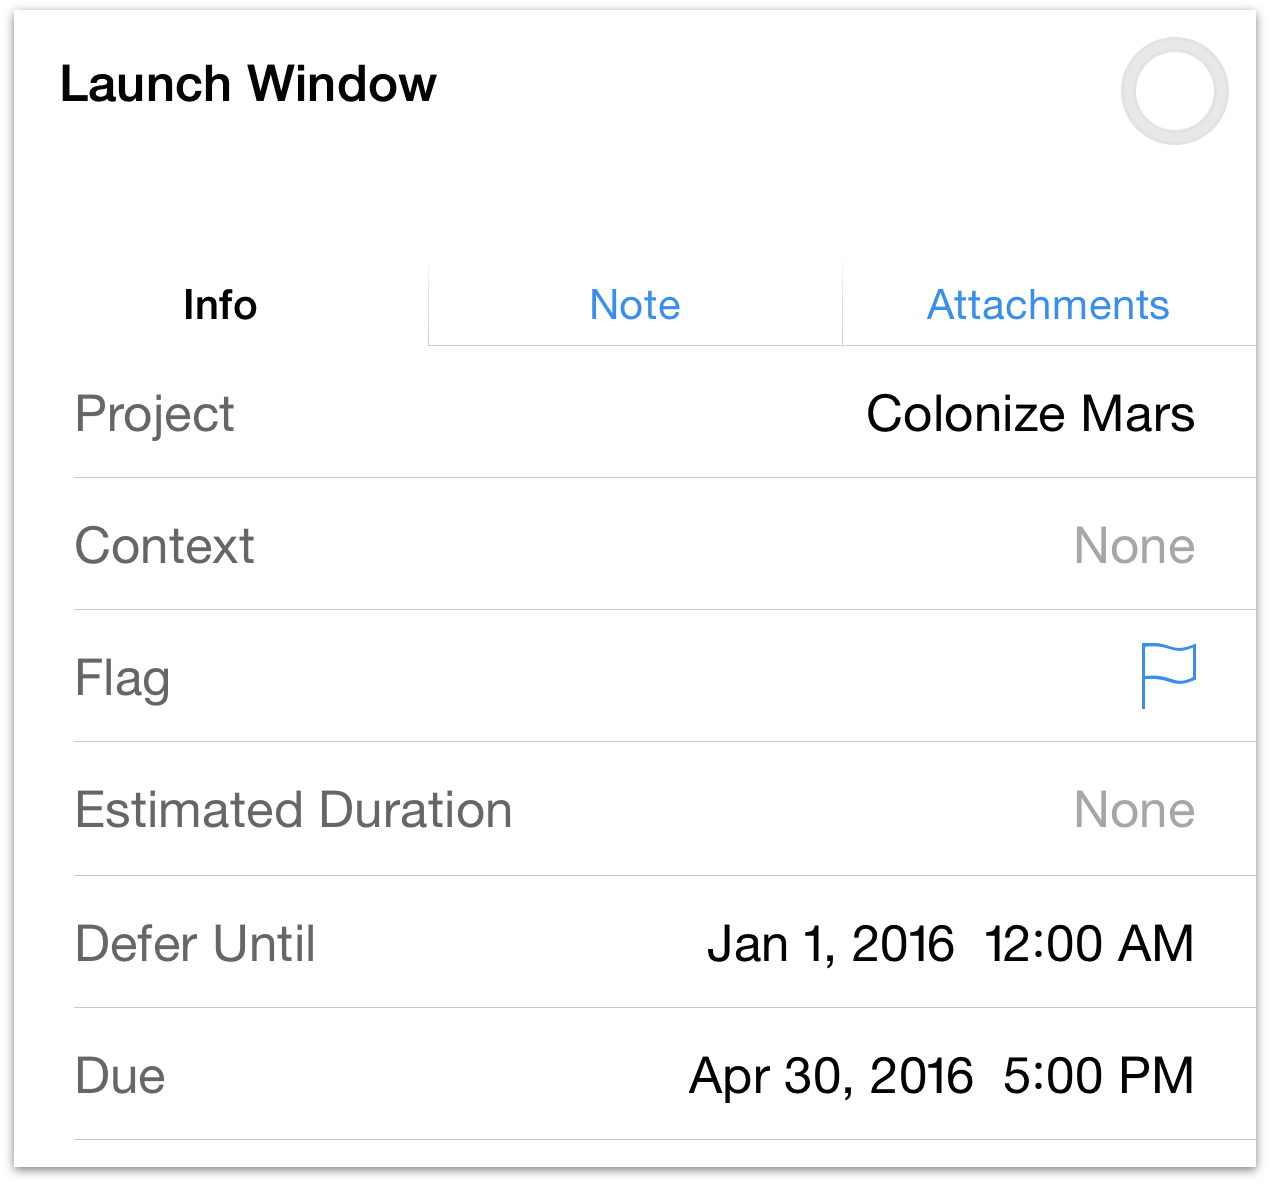 Creating a Launch Window action in the Colonize Mars project, bracketed by a defer until date and a due date.